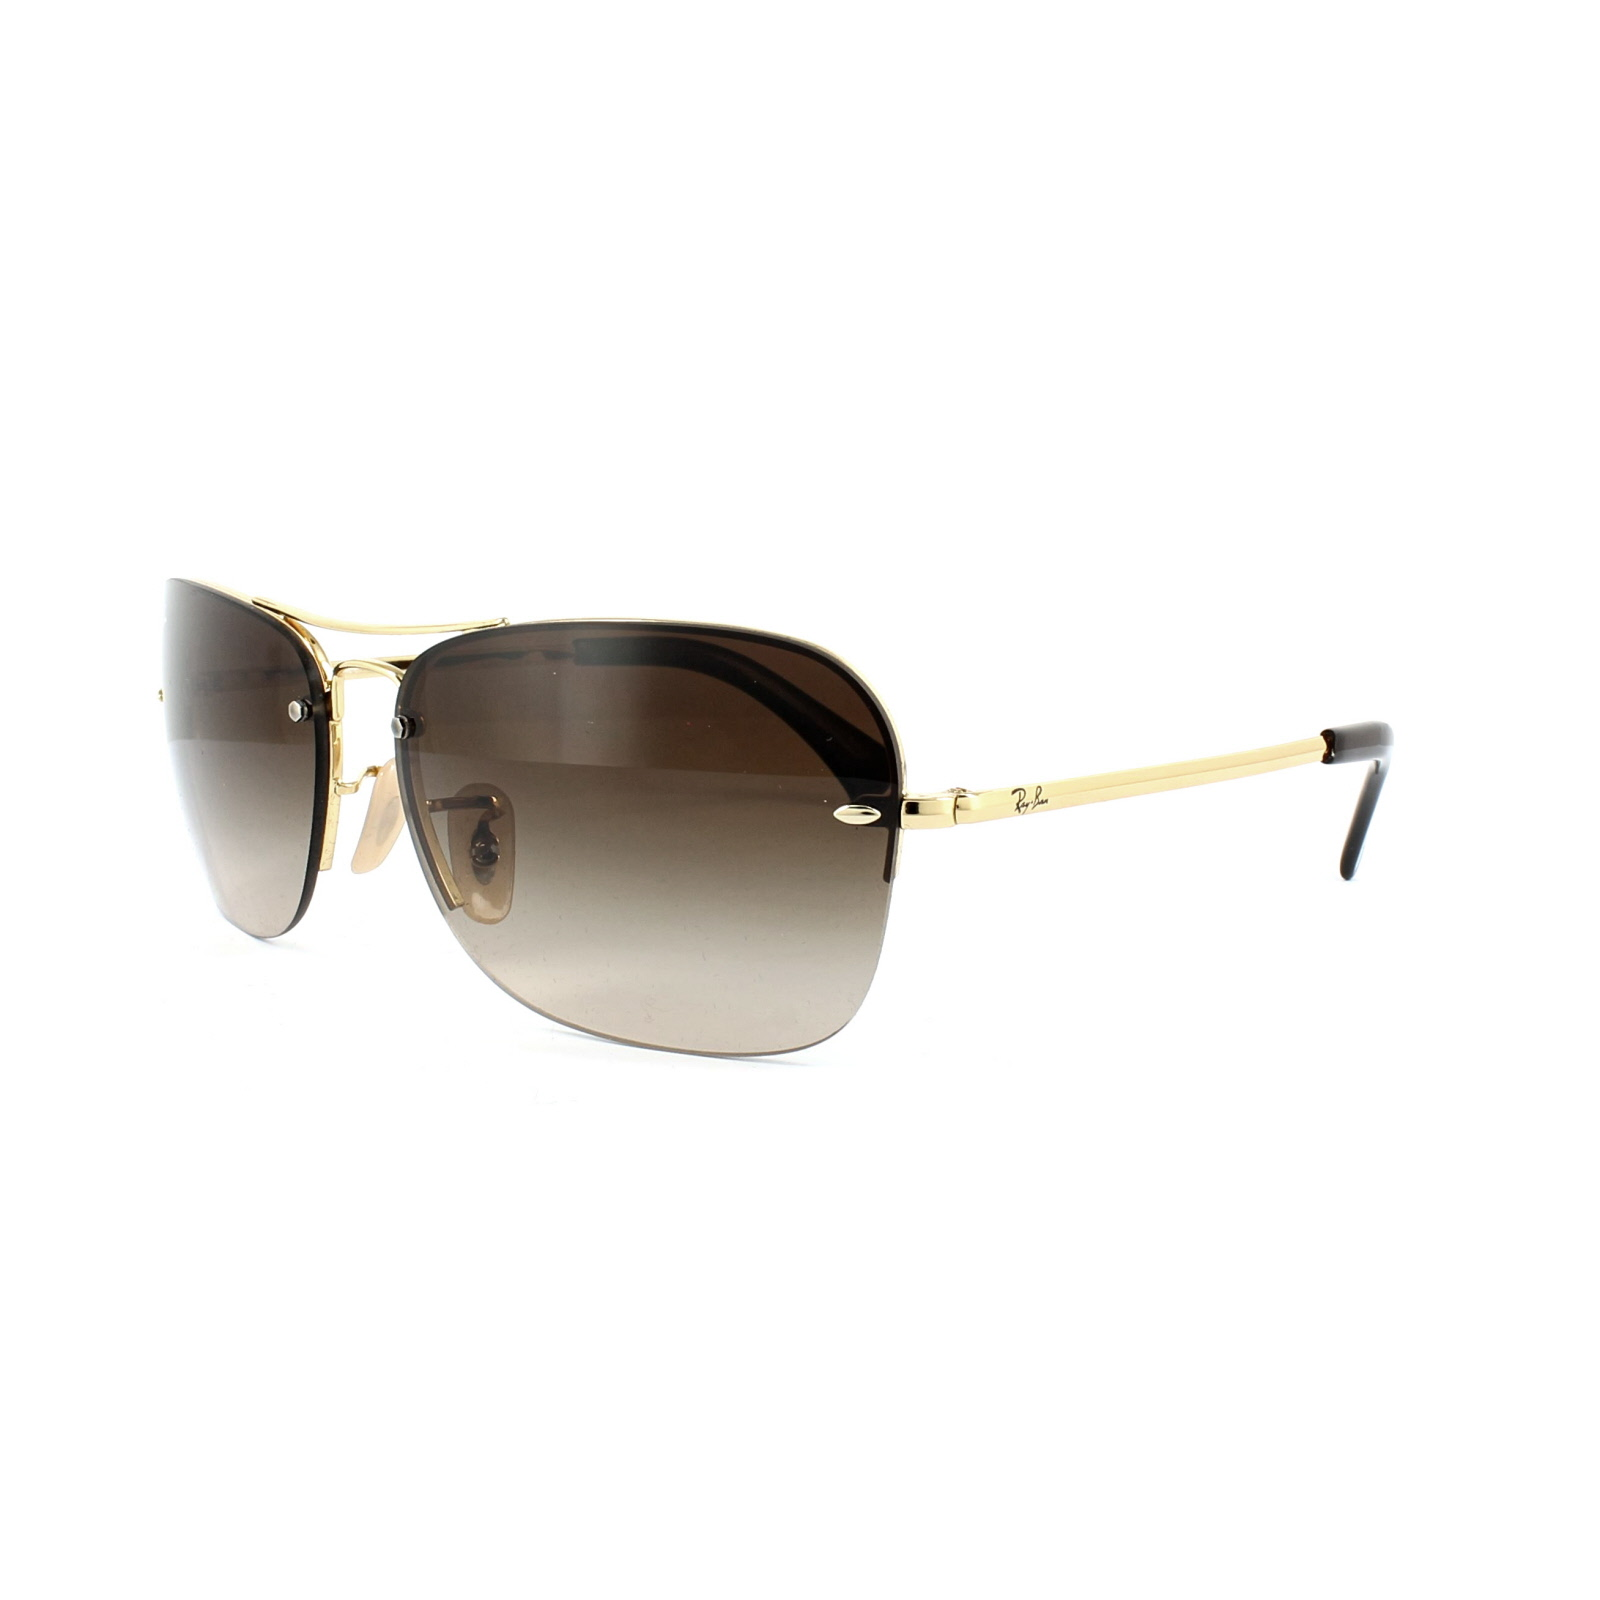 Details about Ray-Ban Sunglasses 3541 001 13 Gold Brown Gradient 4e7ad6eb04